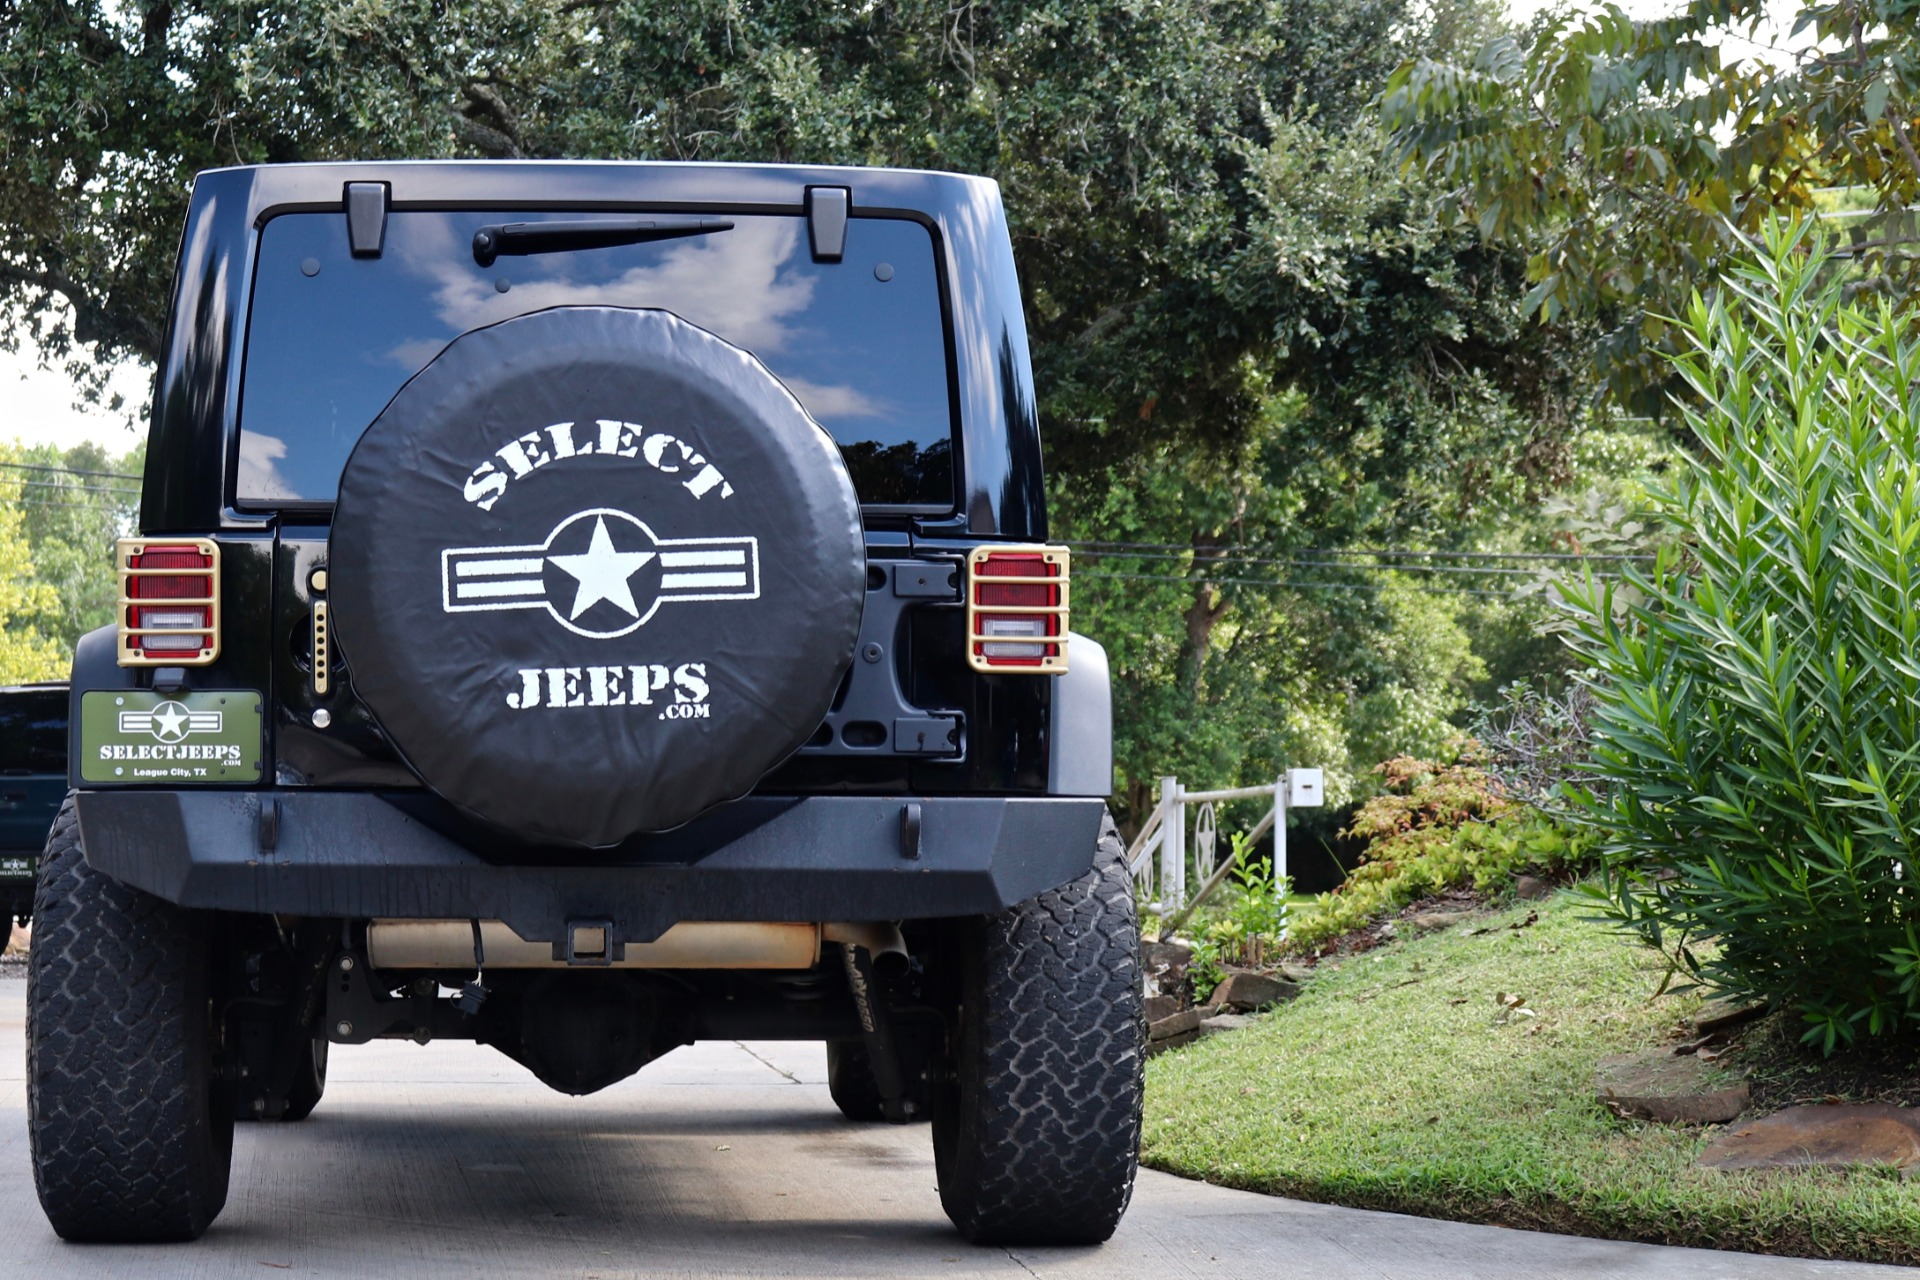 Used-2015-Jeep-Wrangler-Unlimited-Rubicon